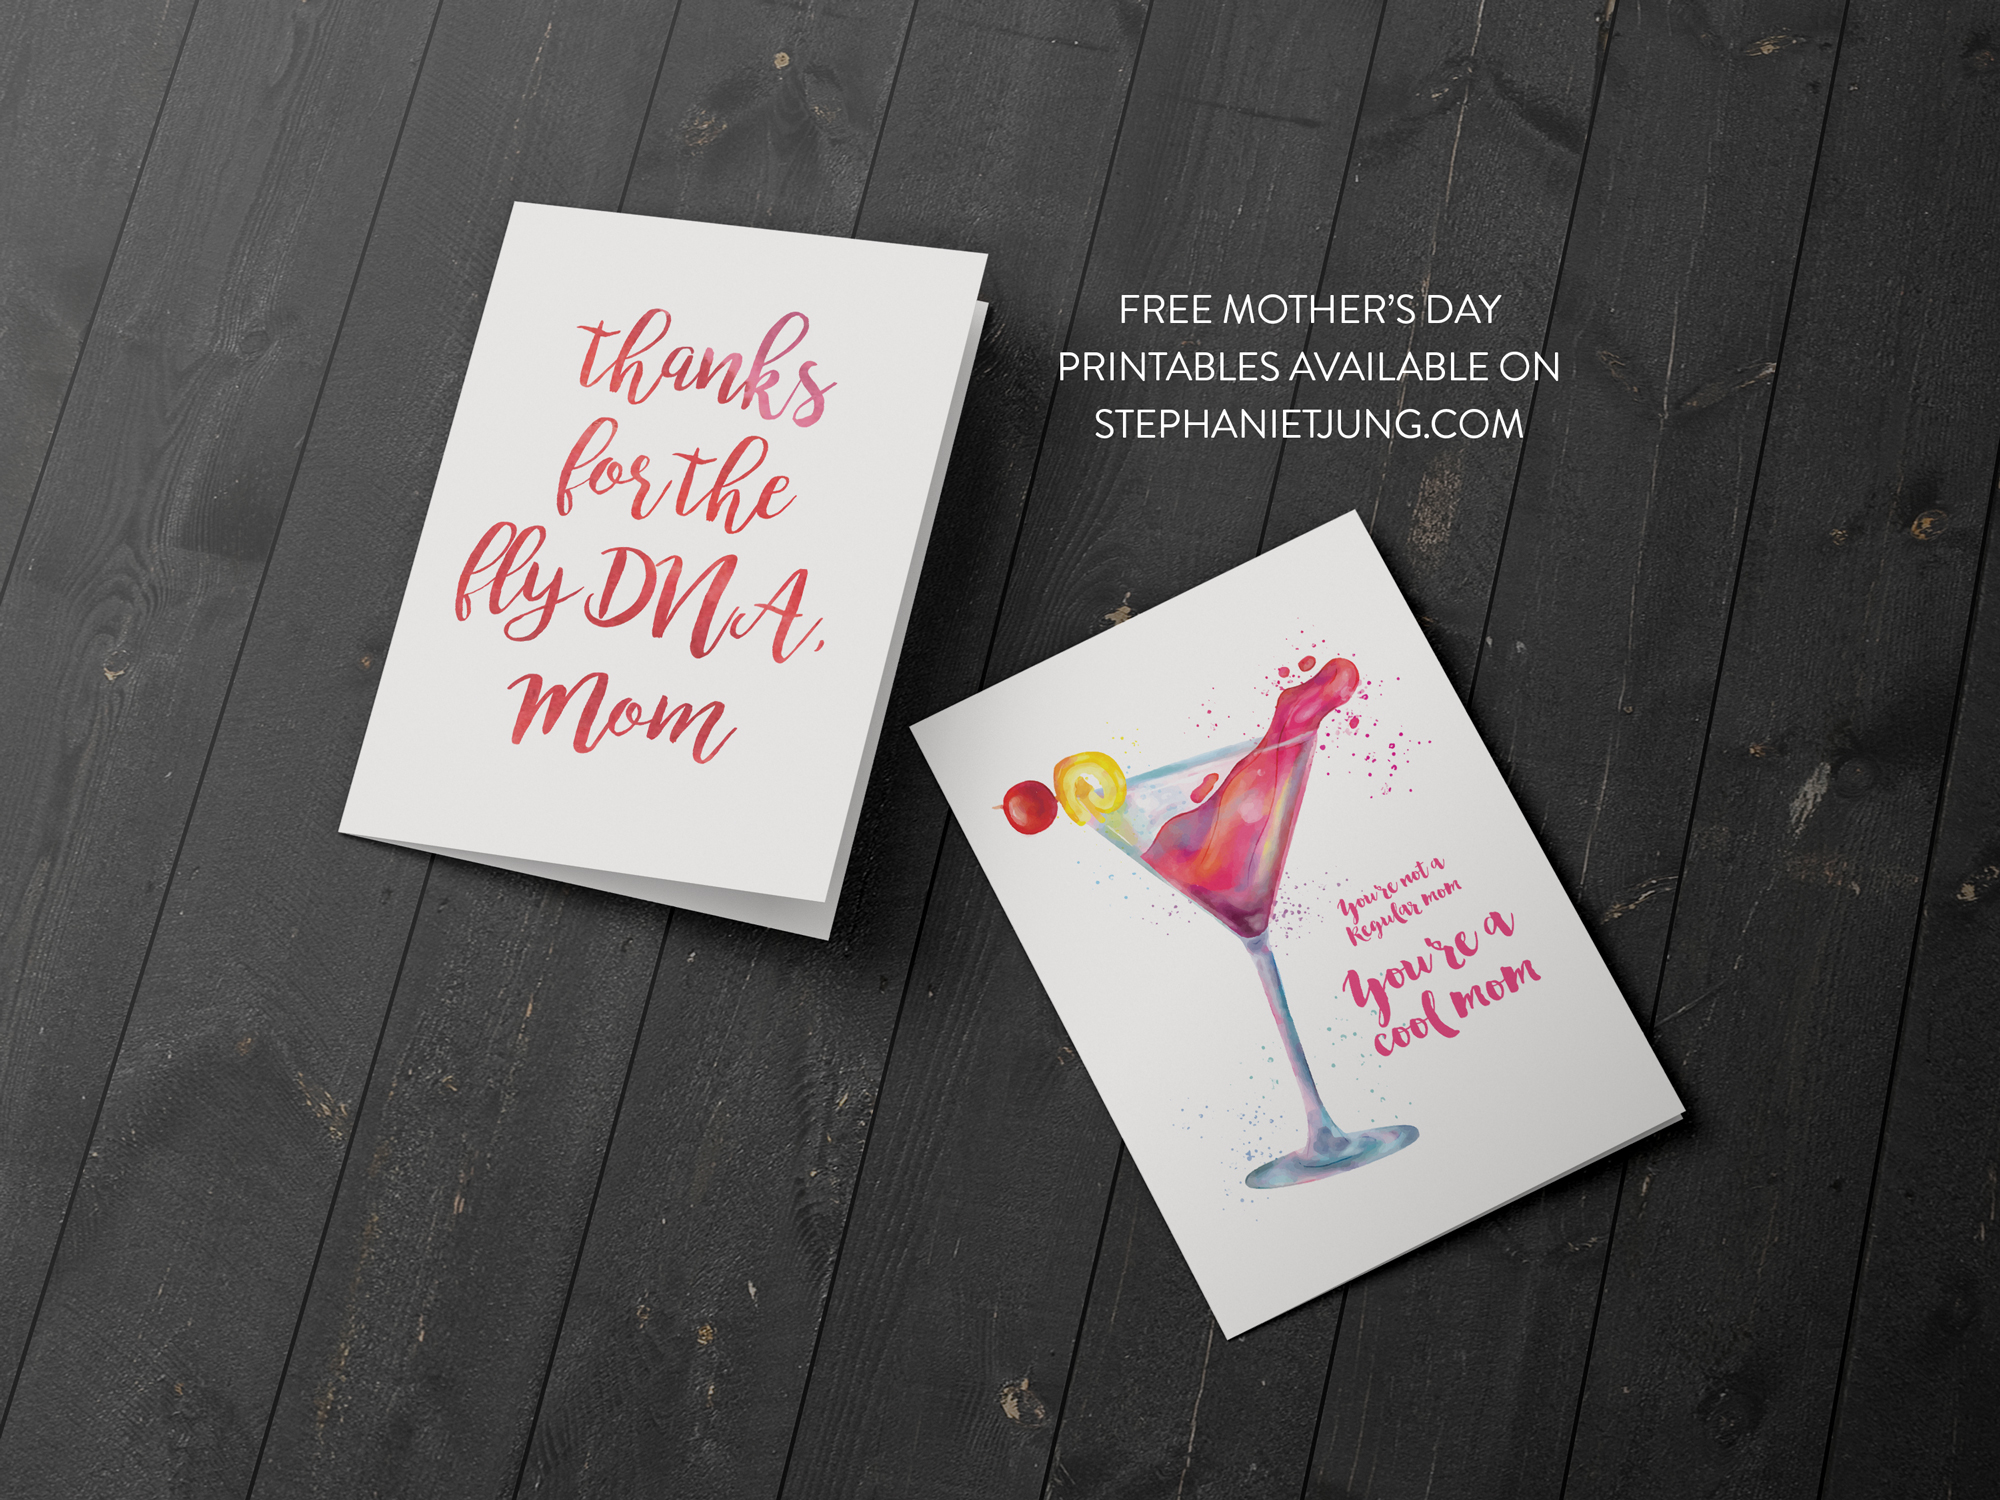 Freebies - www.stephanietjung.com